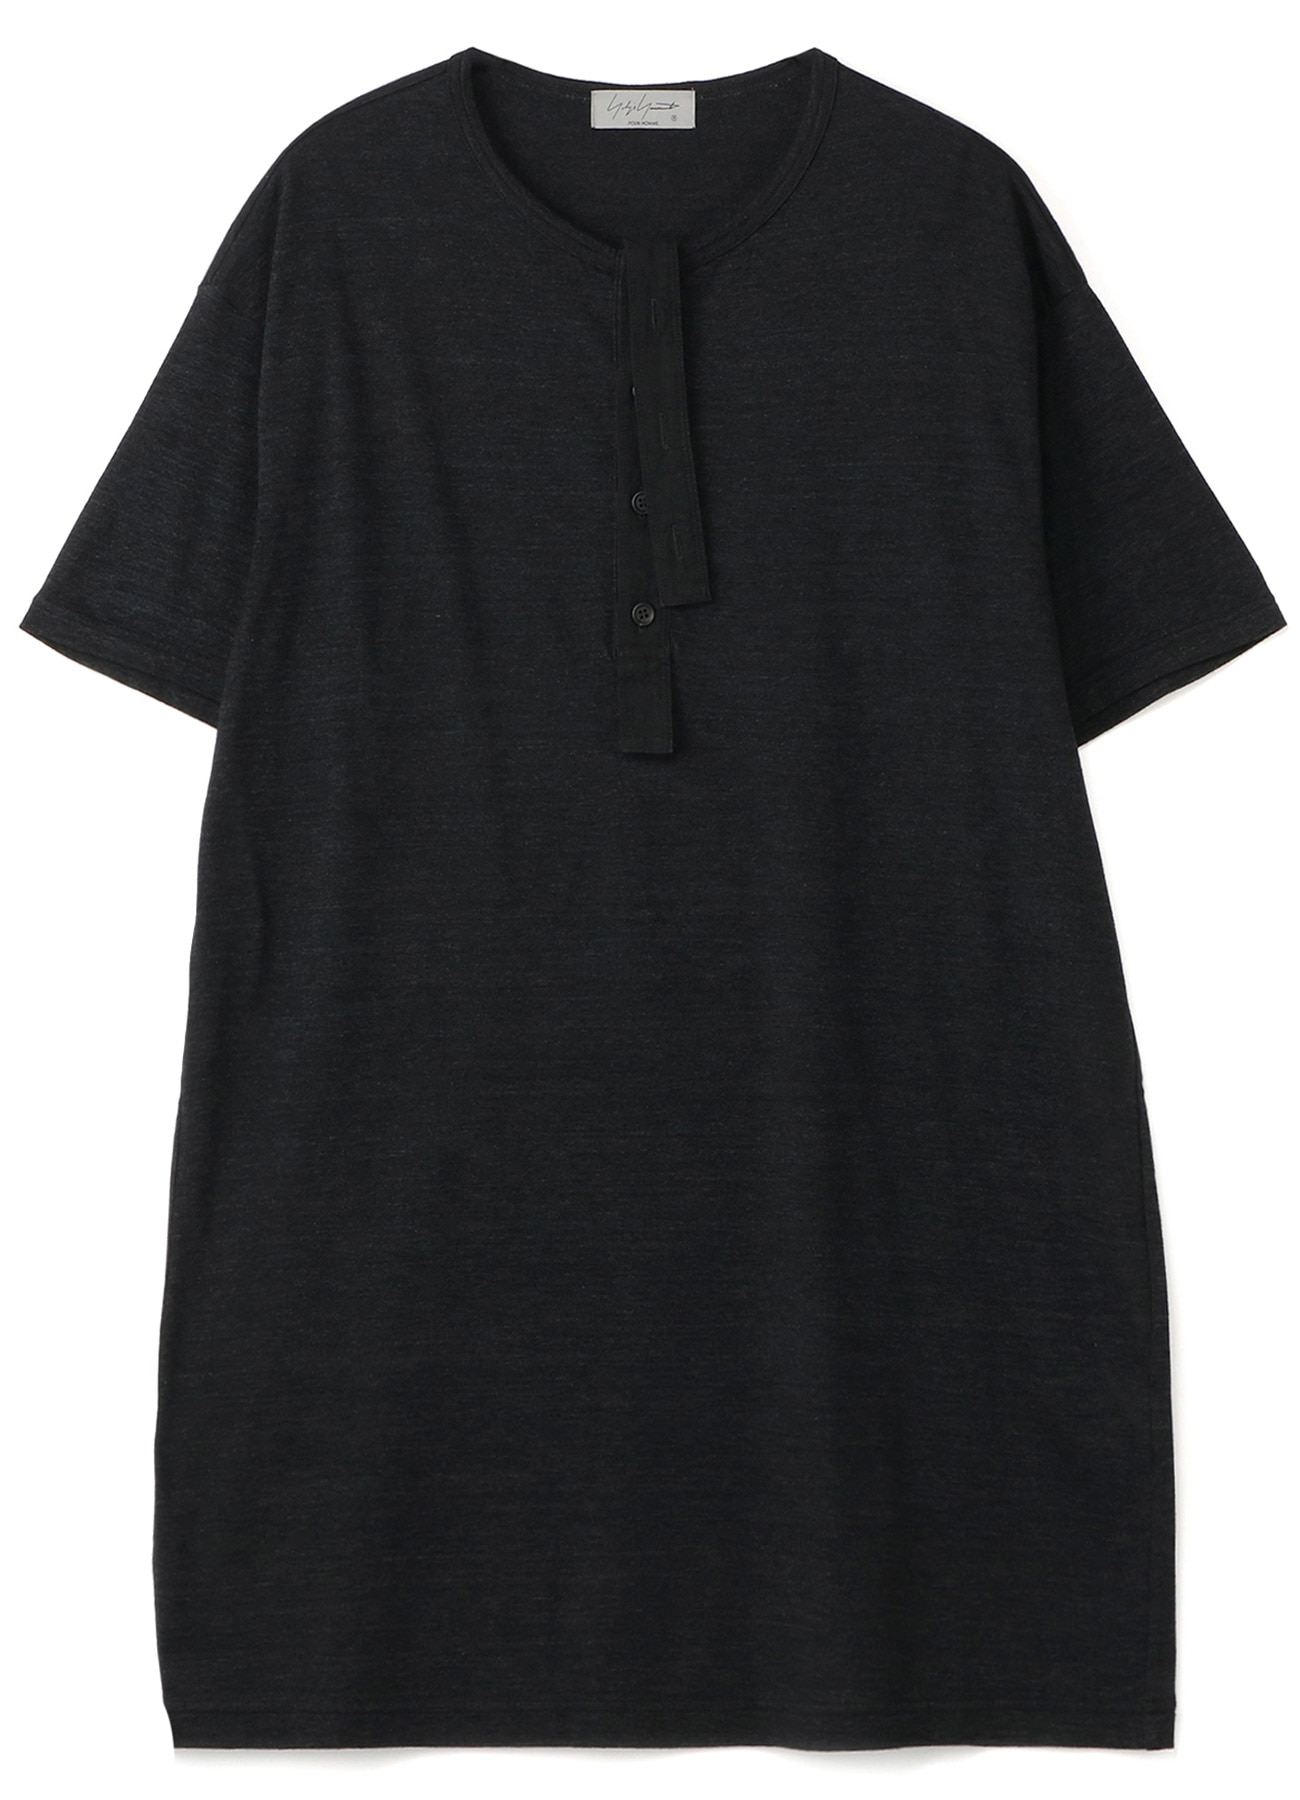 PATCHED OZONE PROCESS PLACKET HENLEY NECK